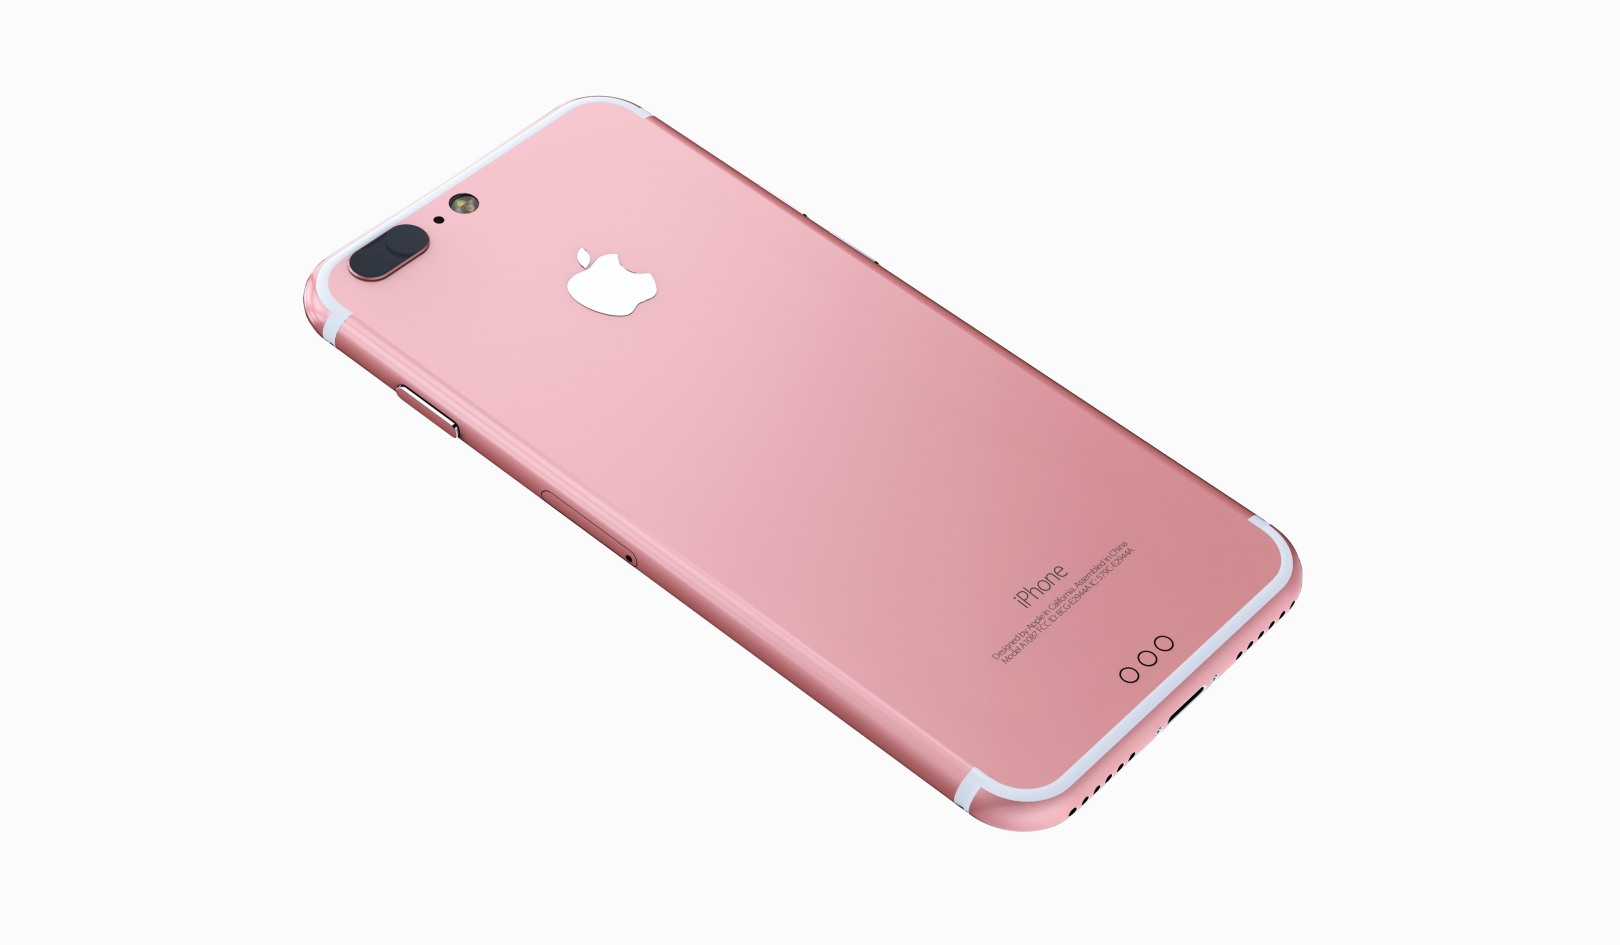 Image result for iphone 7 plus rose gold